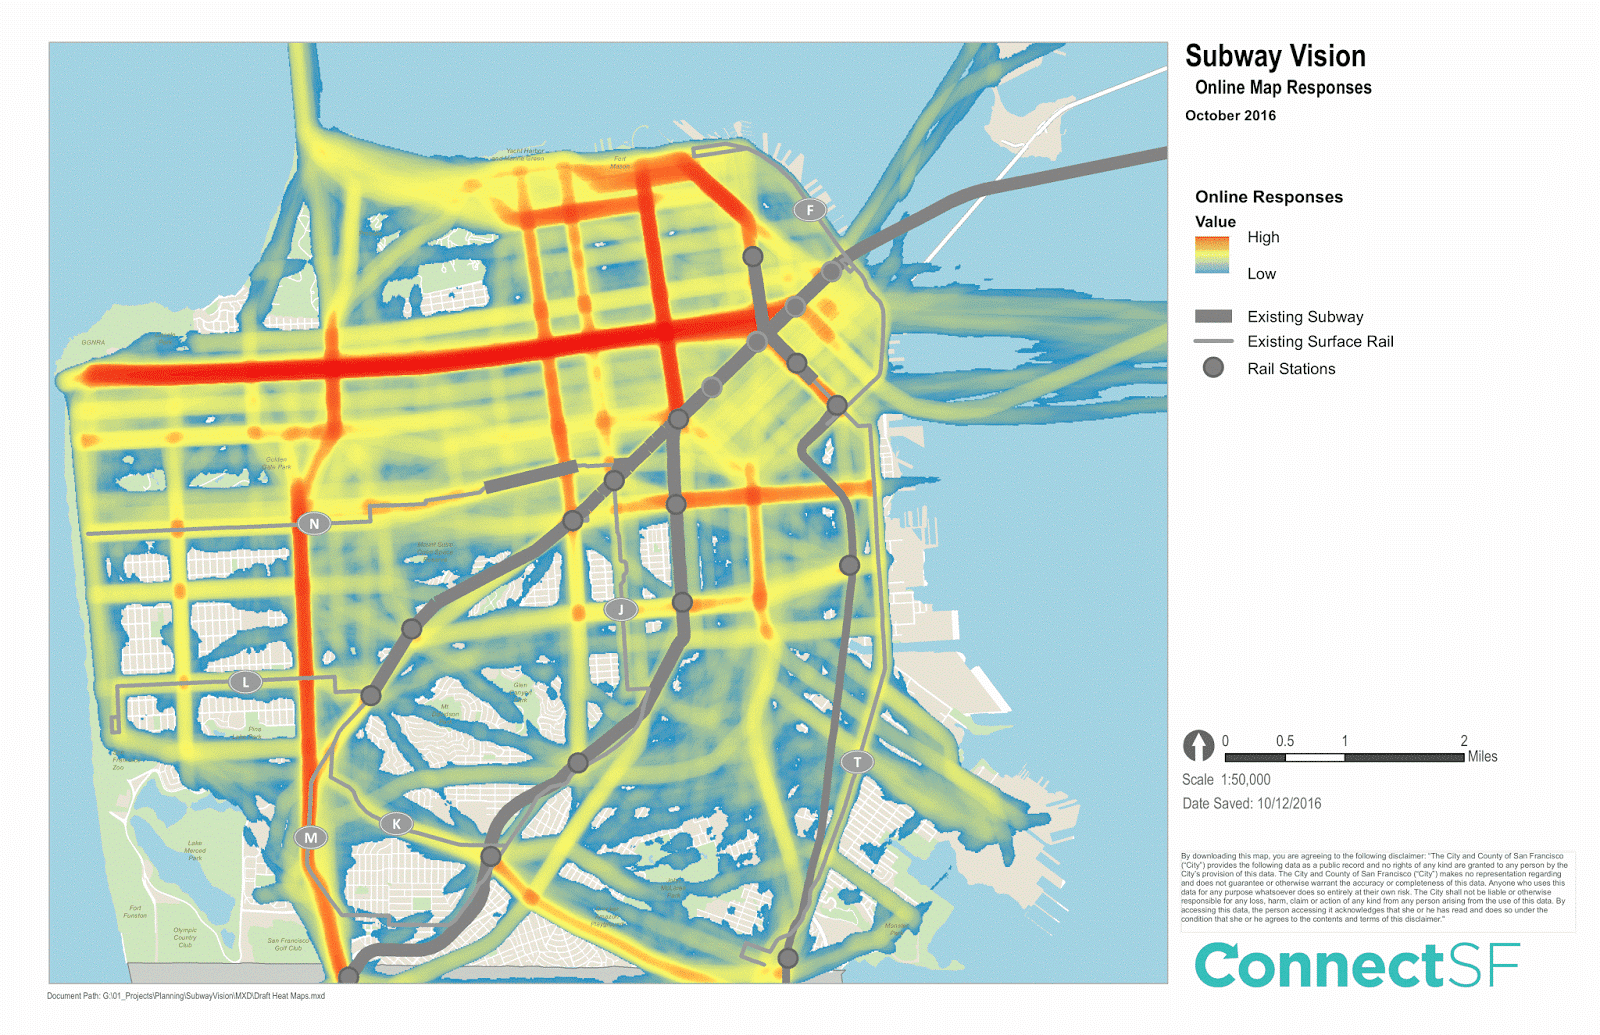 Heat map of 2,600 online responses from an online tool asking people to draw where they think new subway lines should be built in San Francisco